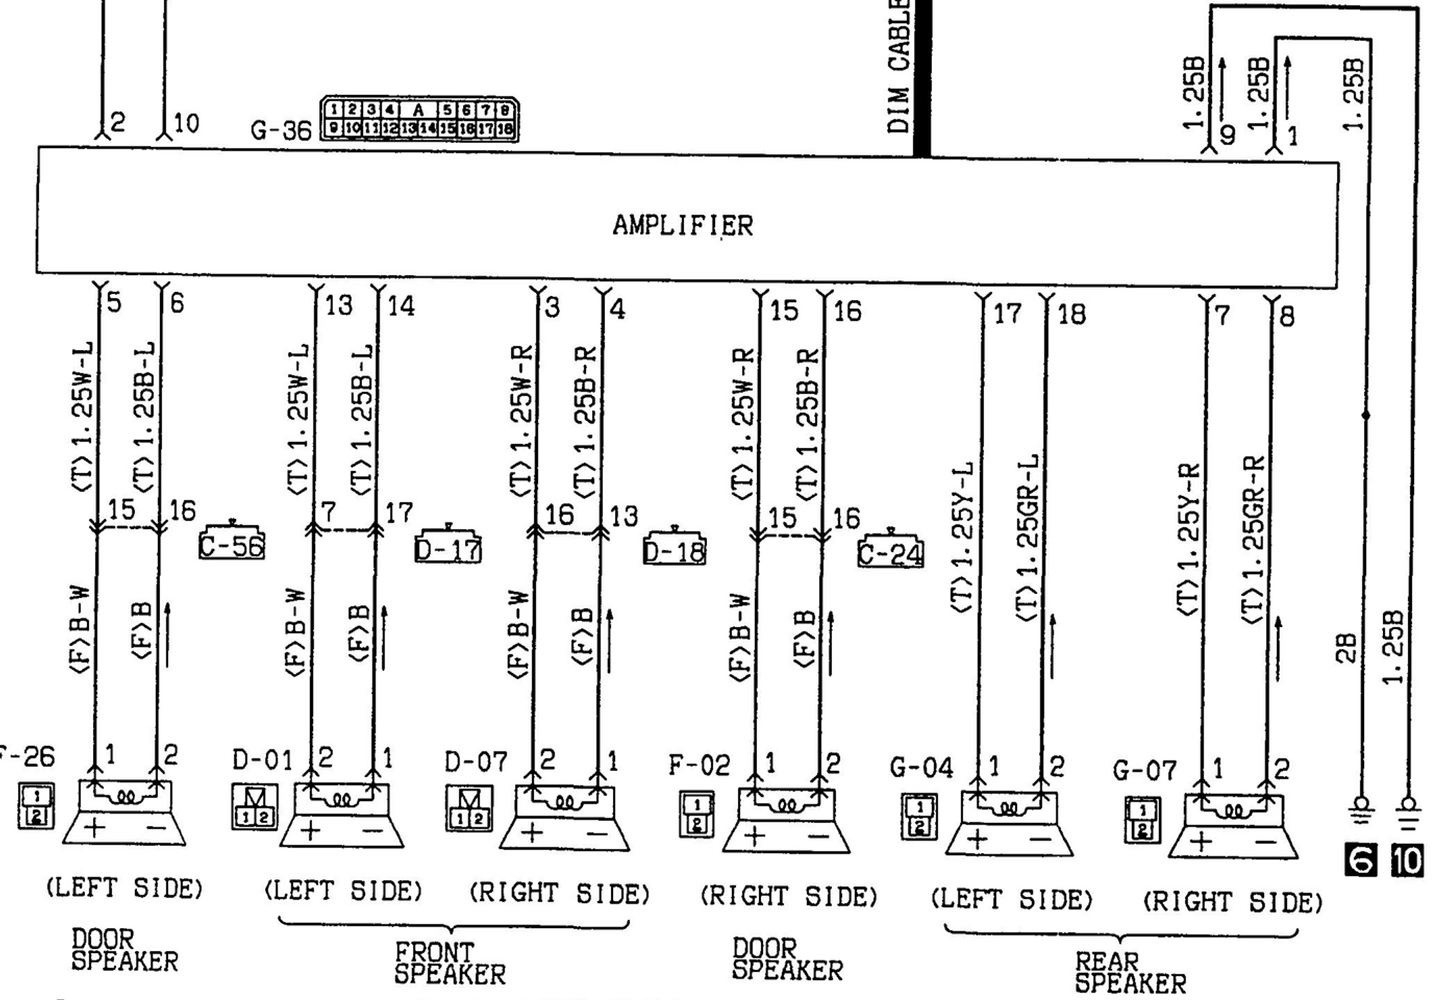 Wiring Diagram 2003 Mitsubishi Eclipse - wiring diagram on ... on